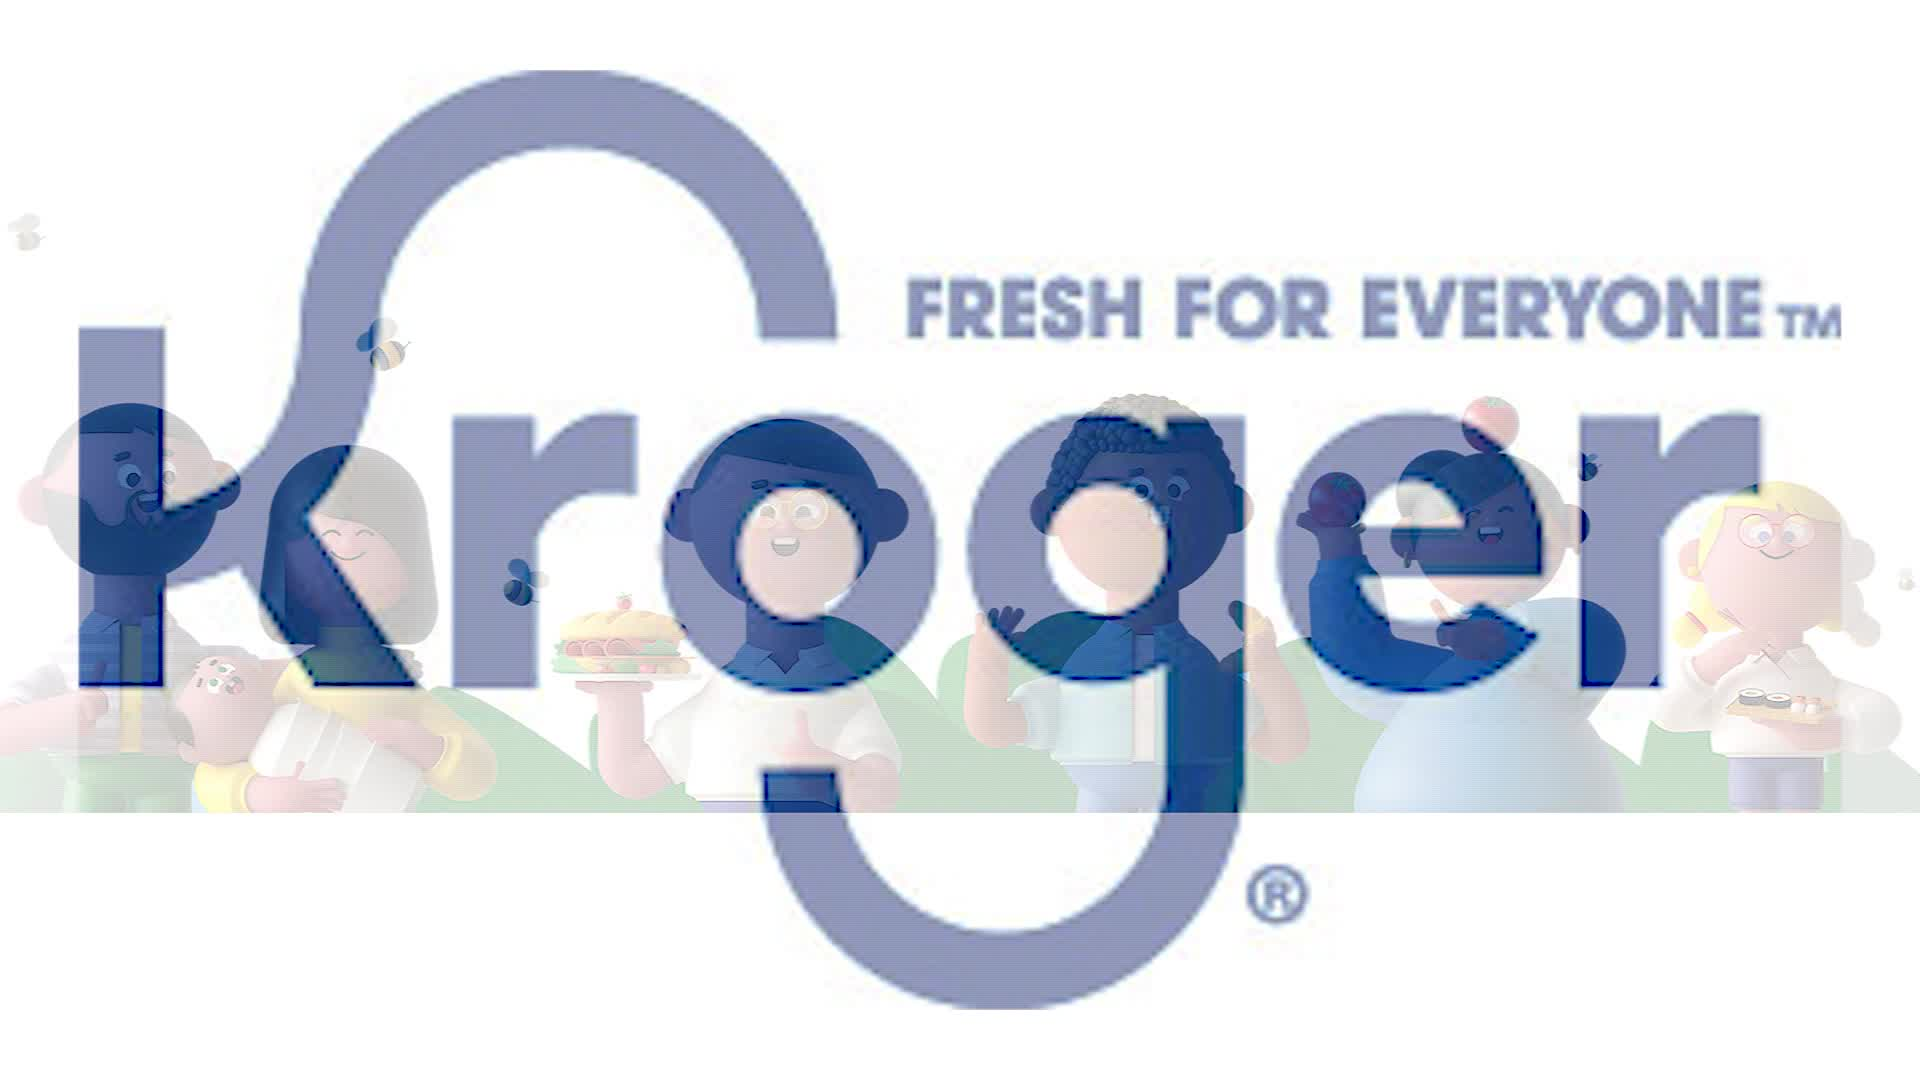 Kroger debuts new logo and slogan.